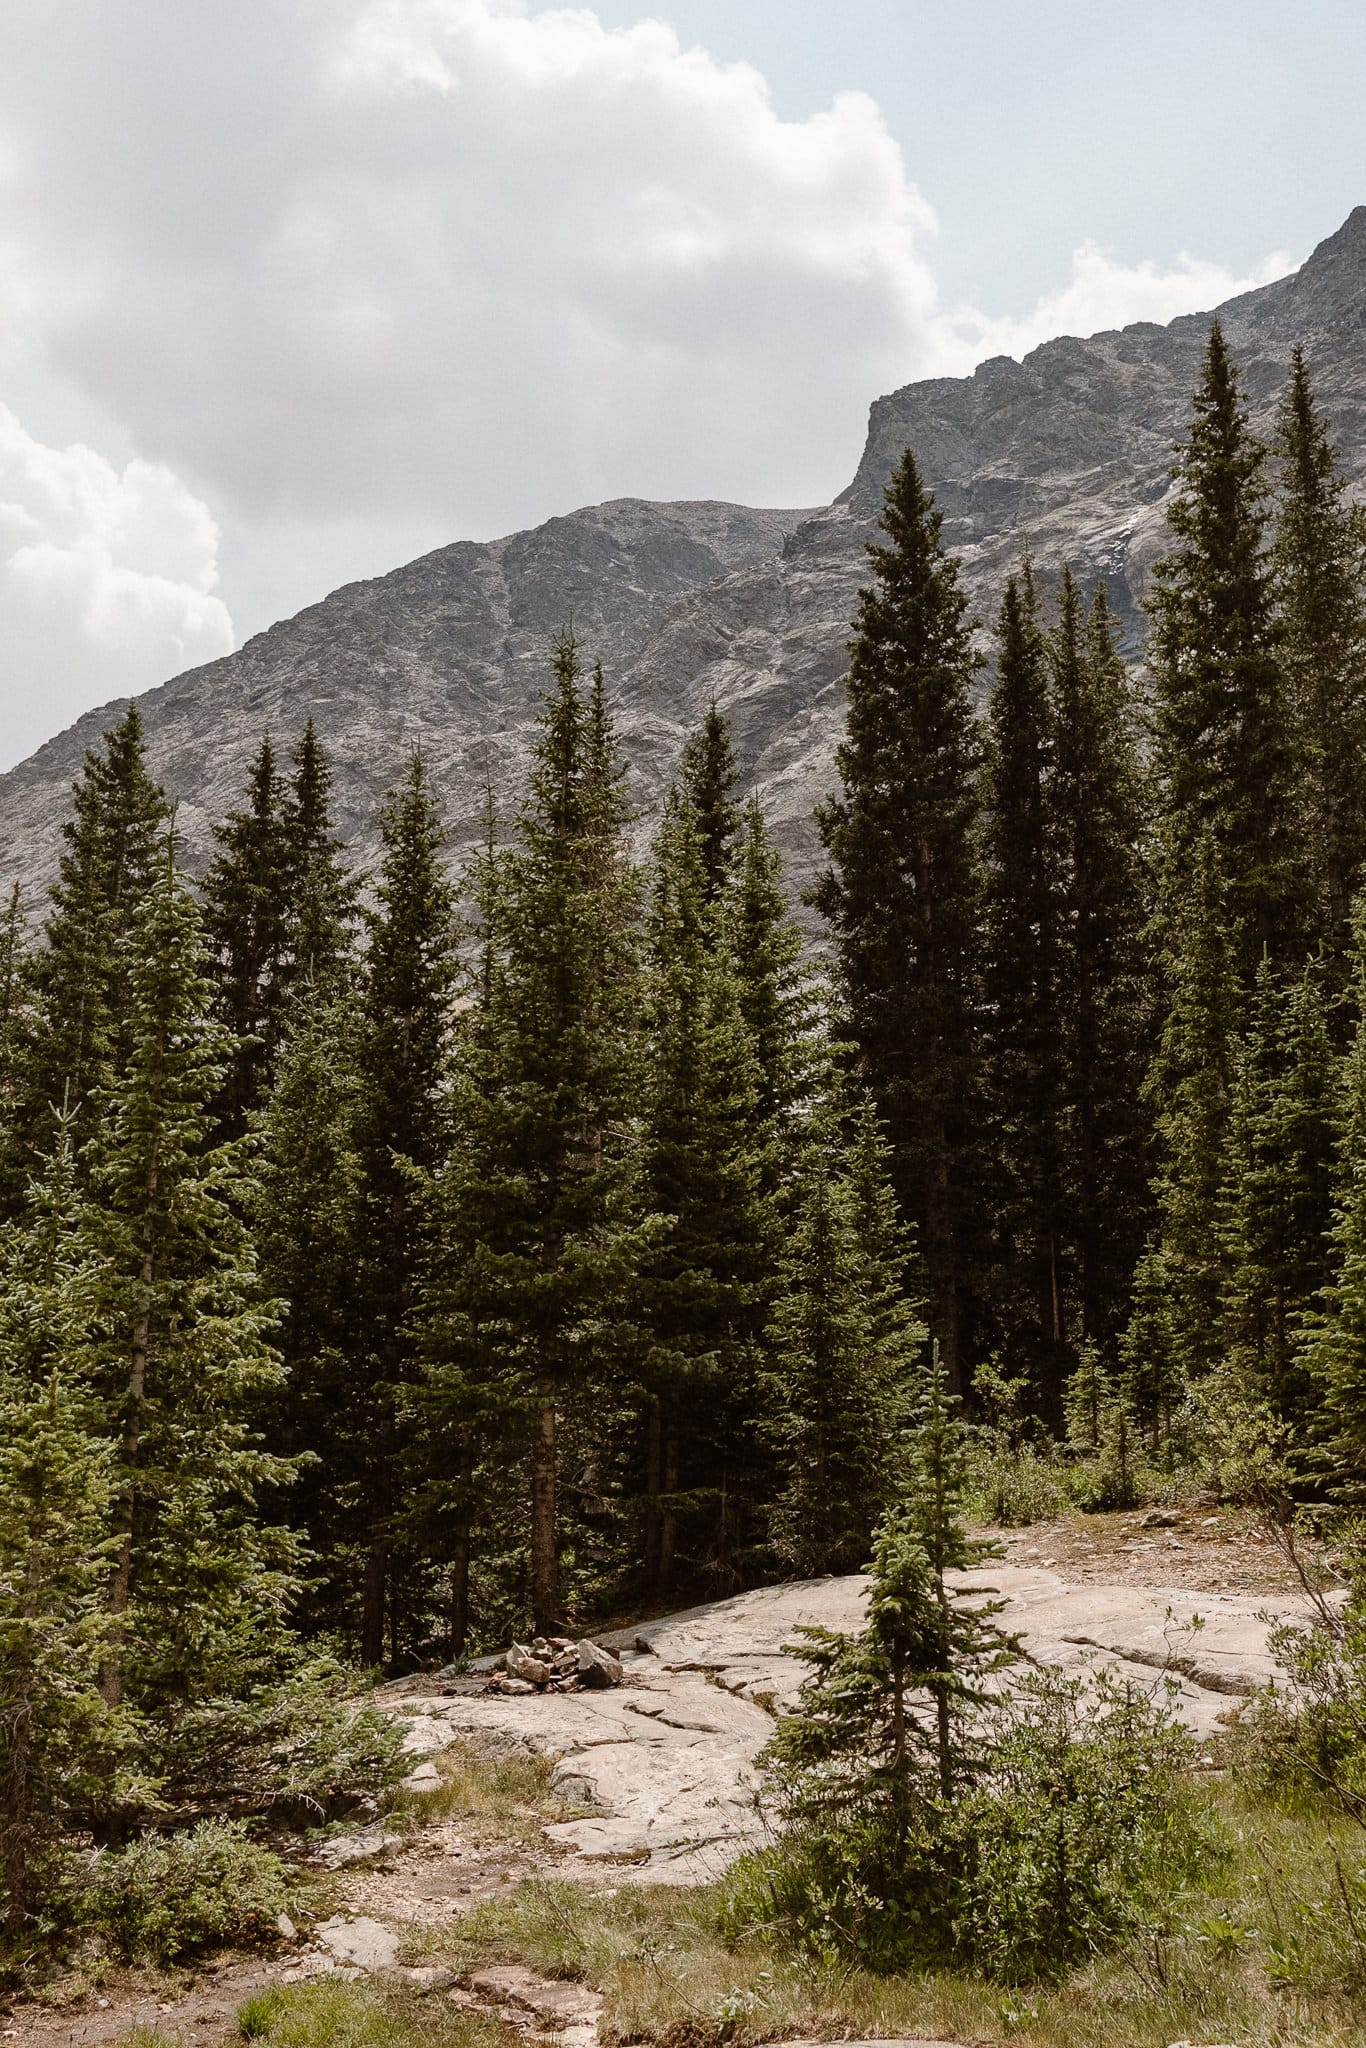 Breckenridge Elopement Locations, Colorado adventure wedding photographer